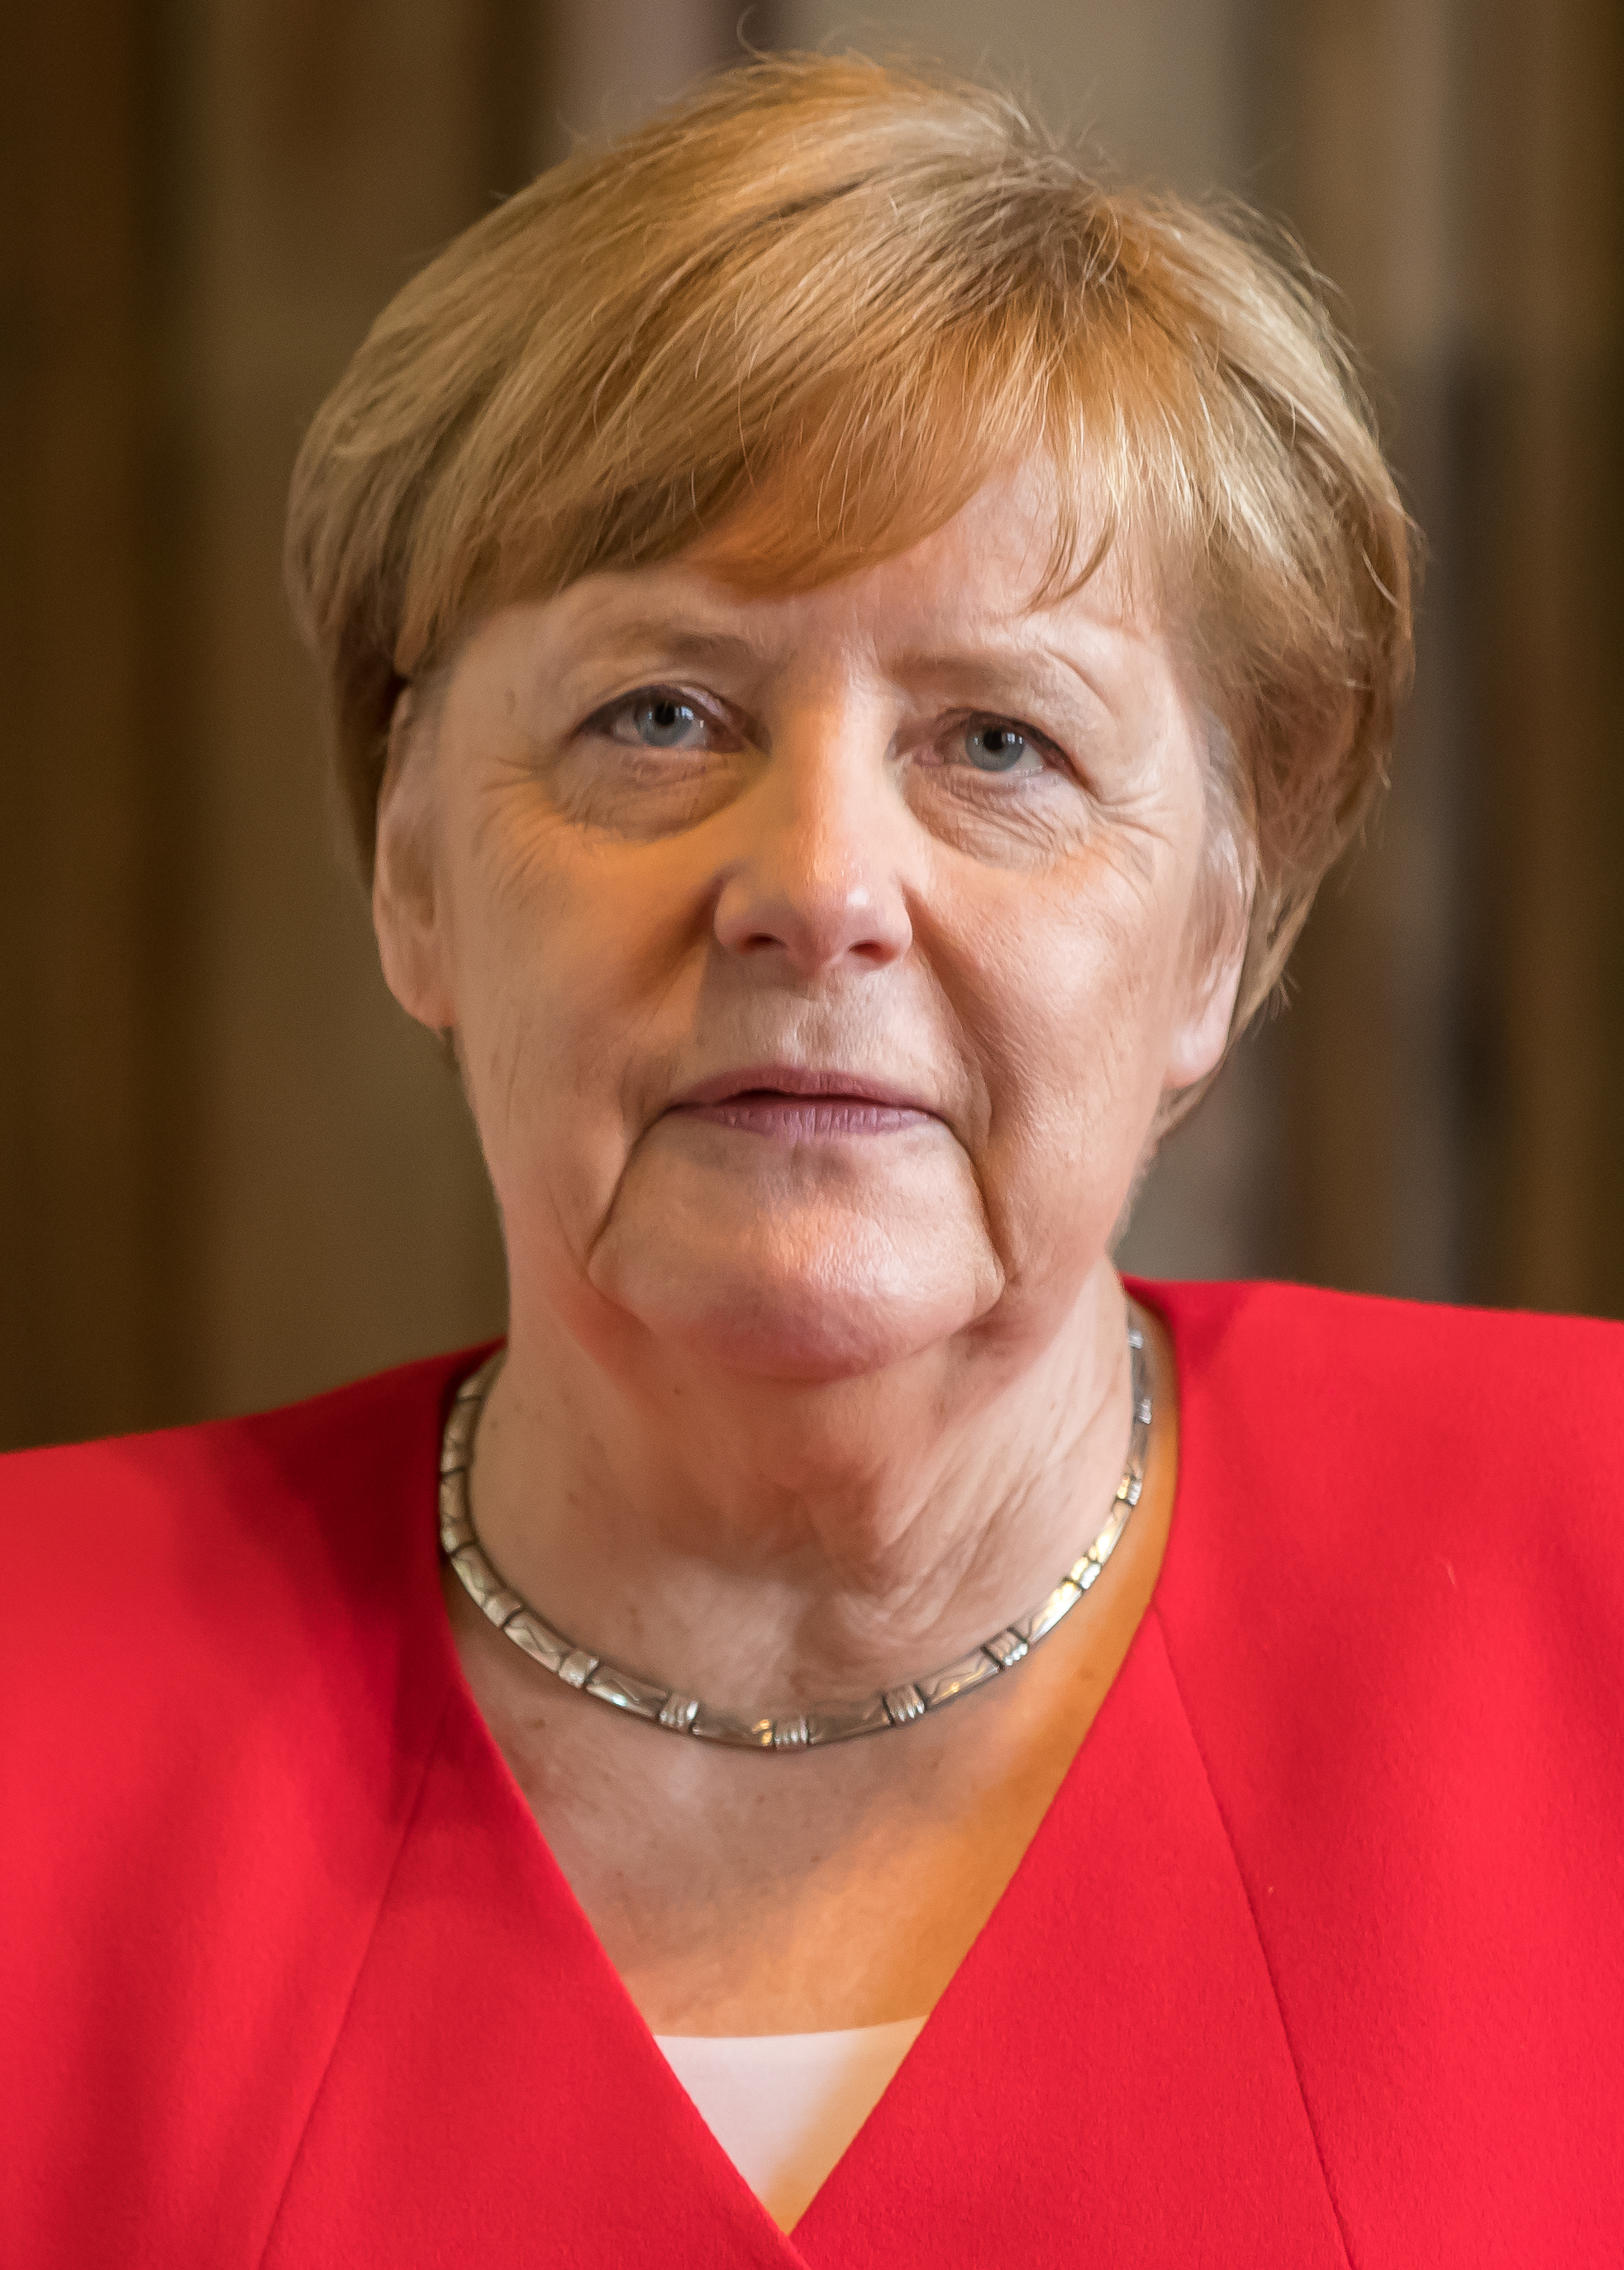 The 66-year old daughter of father Horst Kasner and mother Herlind Kasner Angela Merkel in 2021 photo. Angela Merkel earned a 1.35 million dollar salary - leaving the net worth at 11.5 million in 2021